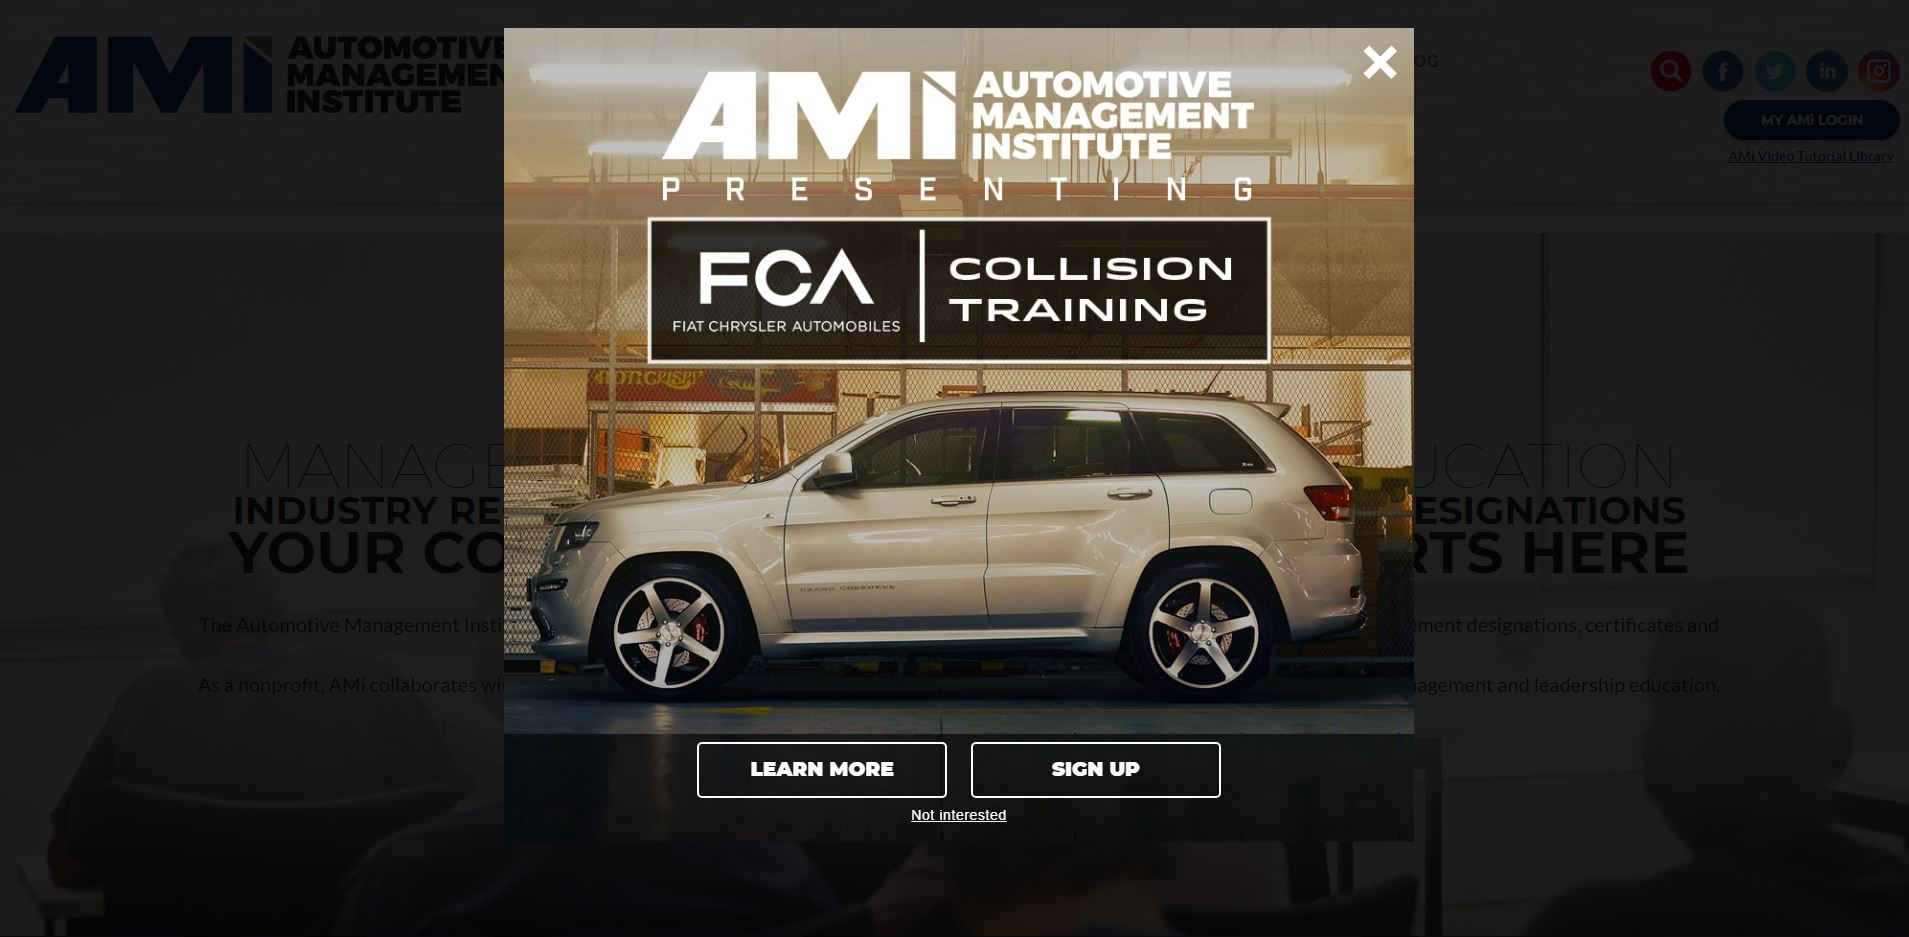 FCA offers 'highly recommended' AMi courses for certified